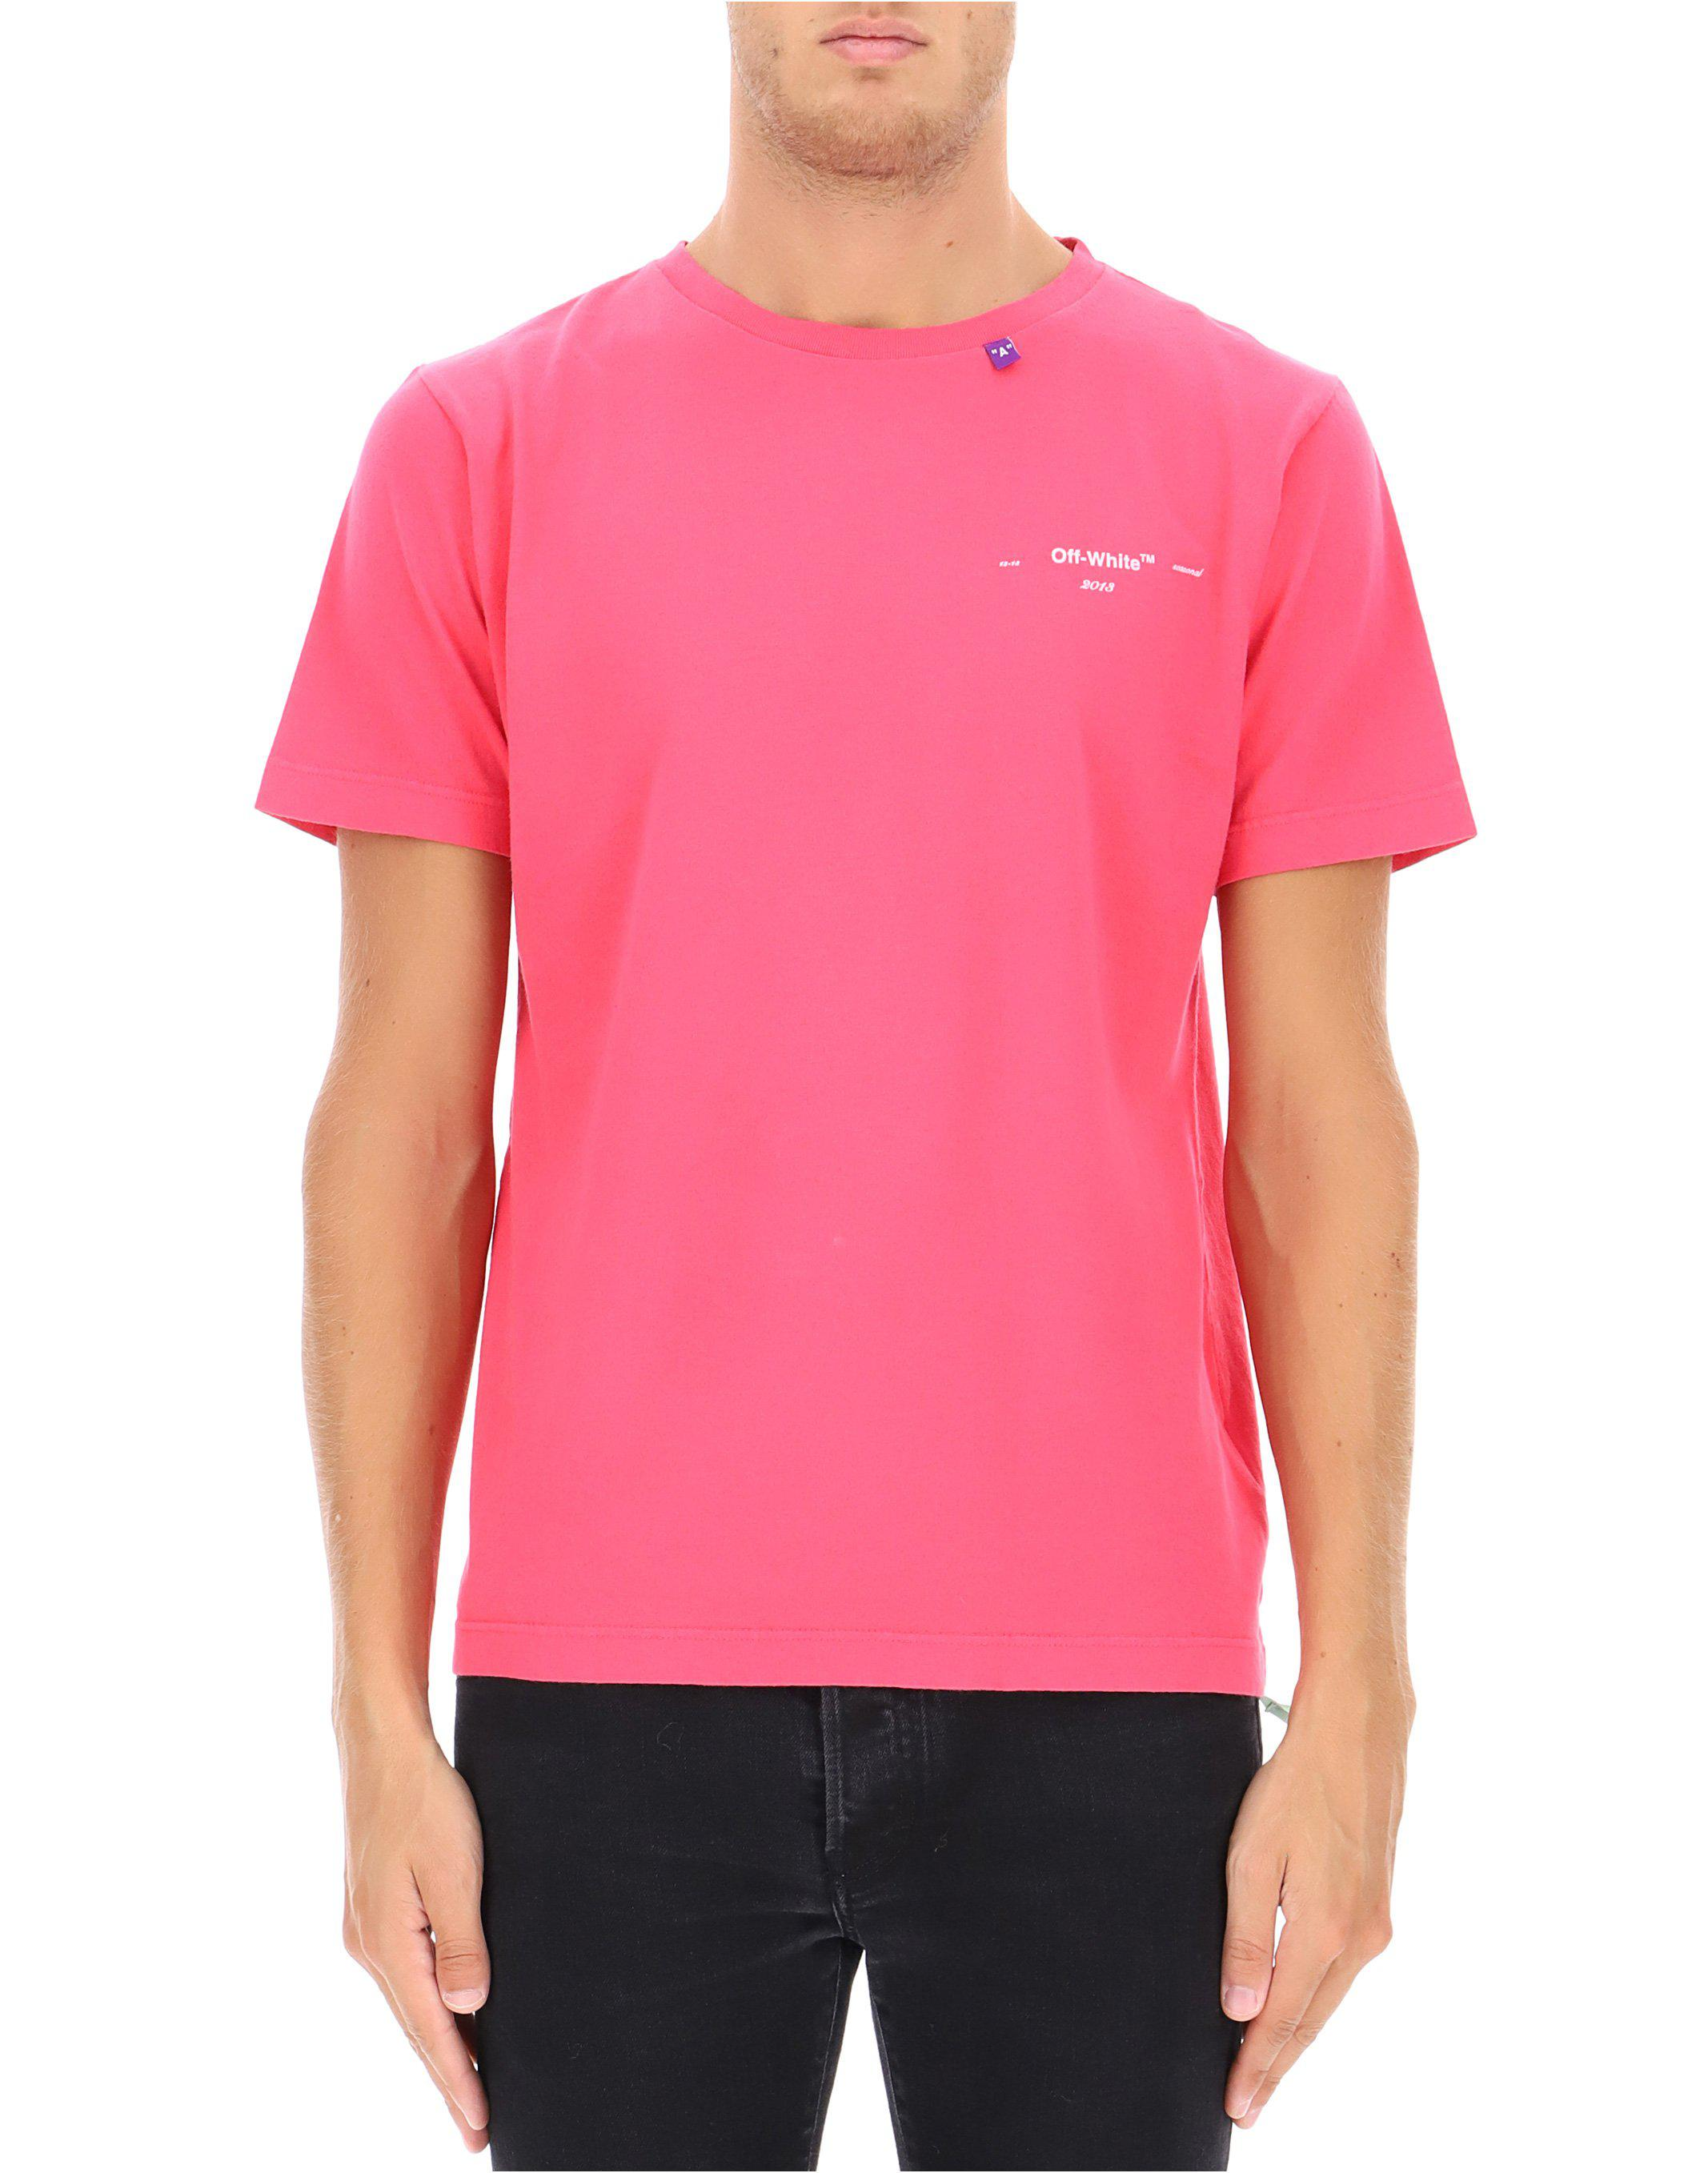 b9d013d2d5d0 Off-White C O Virgil Abloh Logo T-shirt in Pink for Men - Lyst